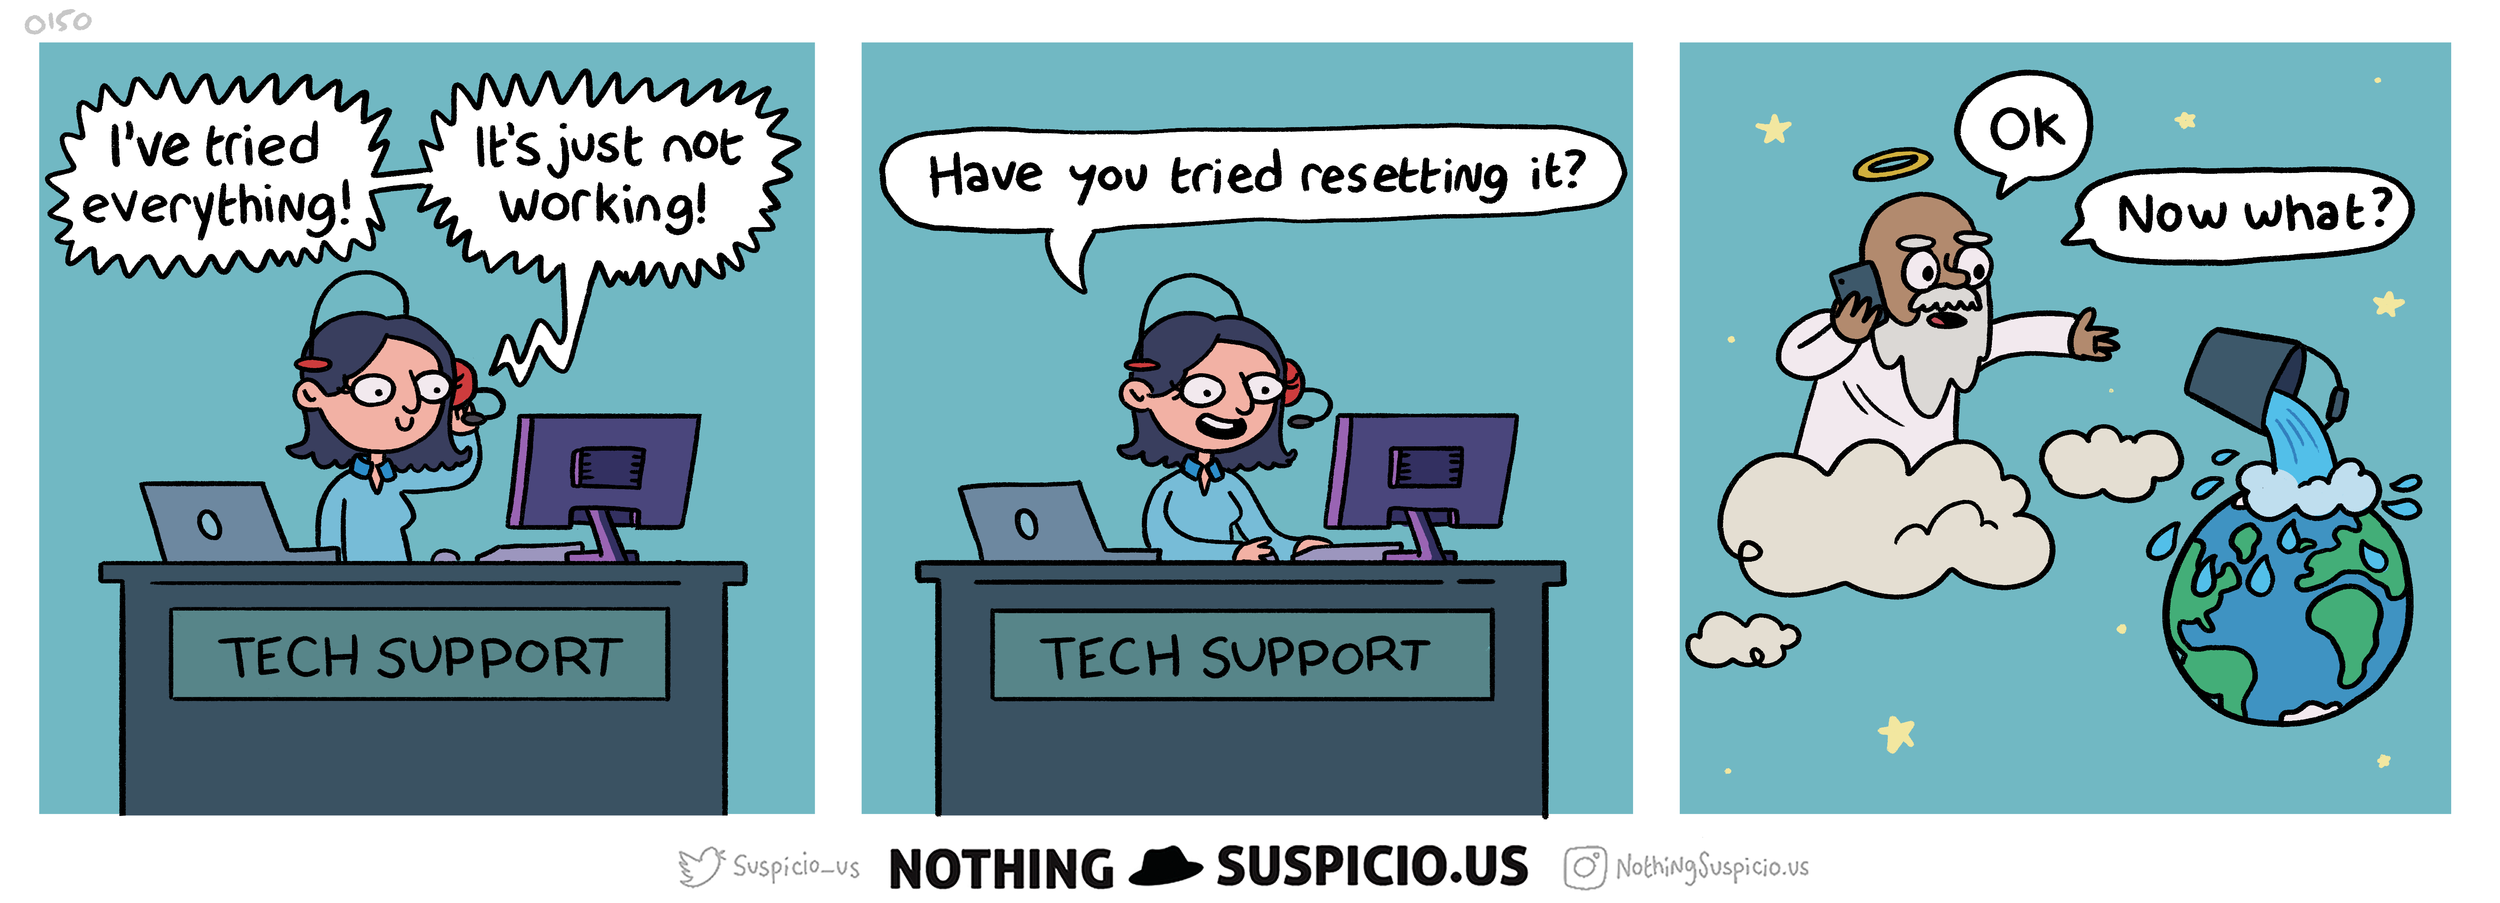 0150 - Tech Support.png